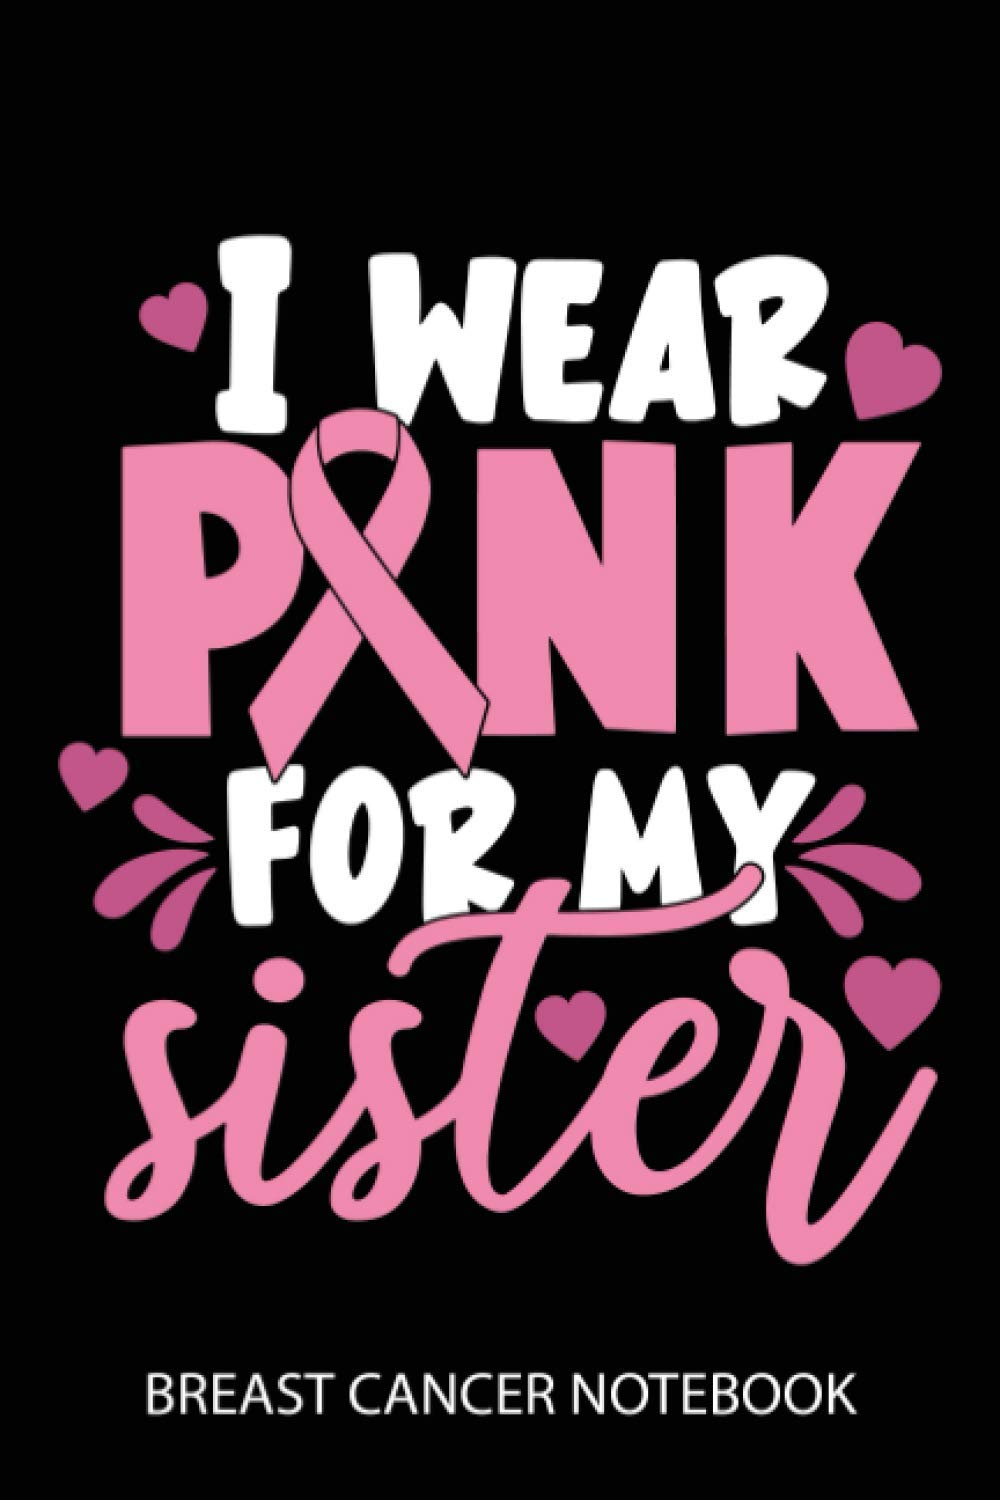 I wear pink for my sister breast cancer notebook Awesome design ...